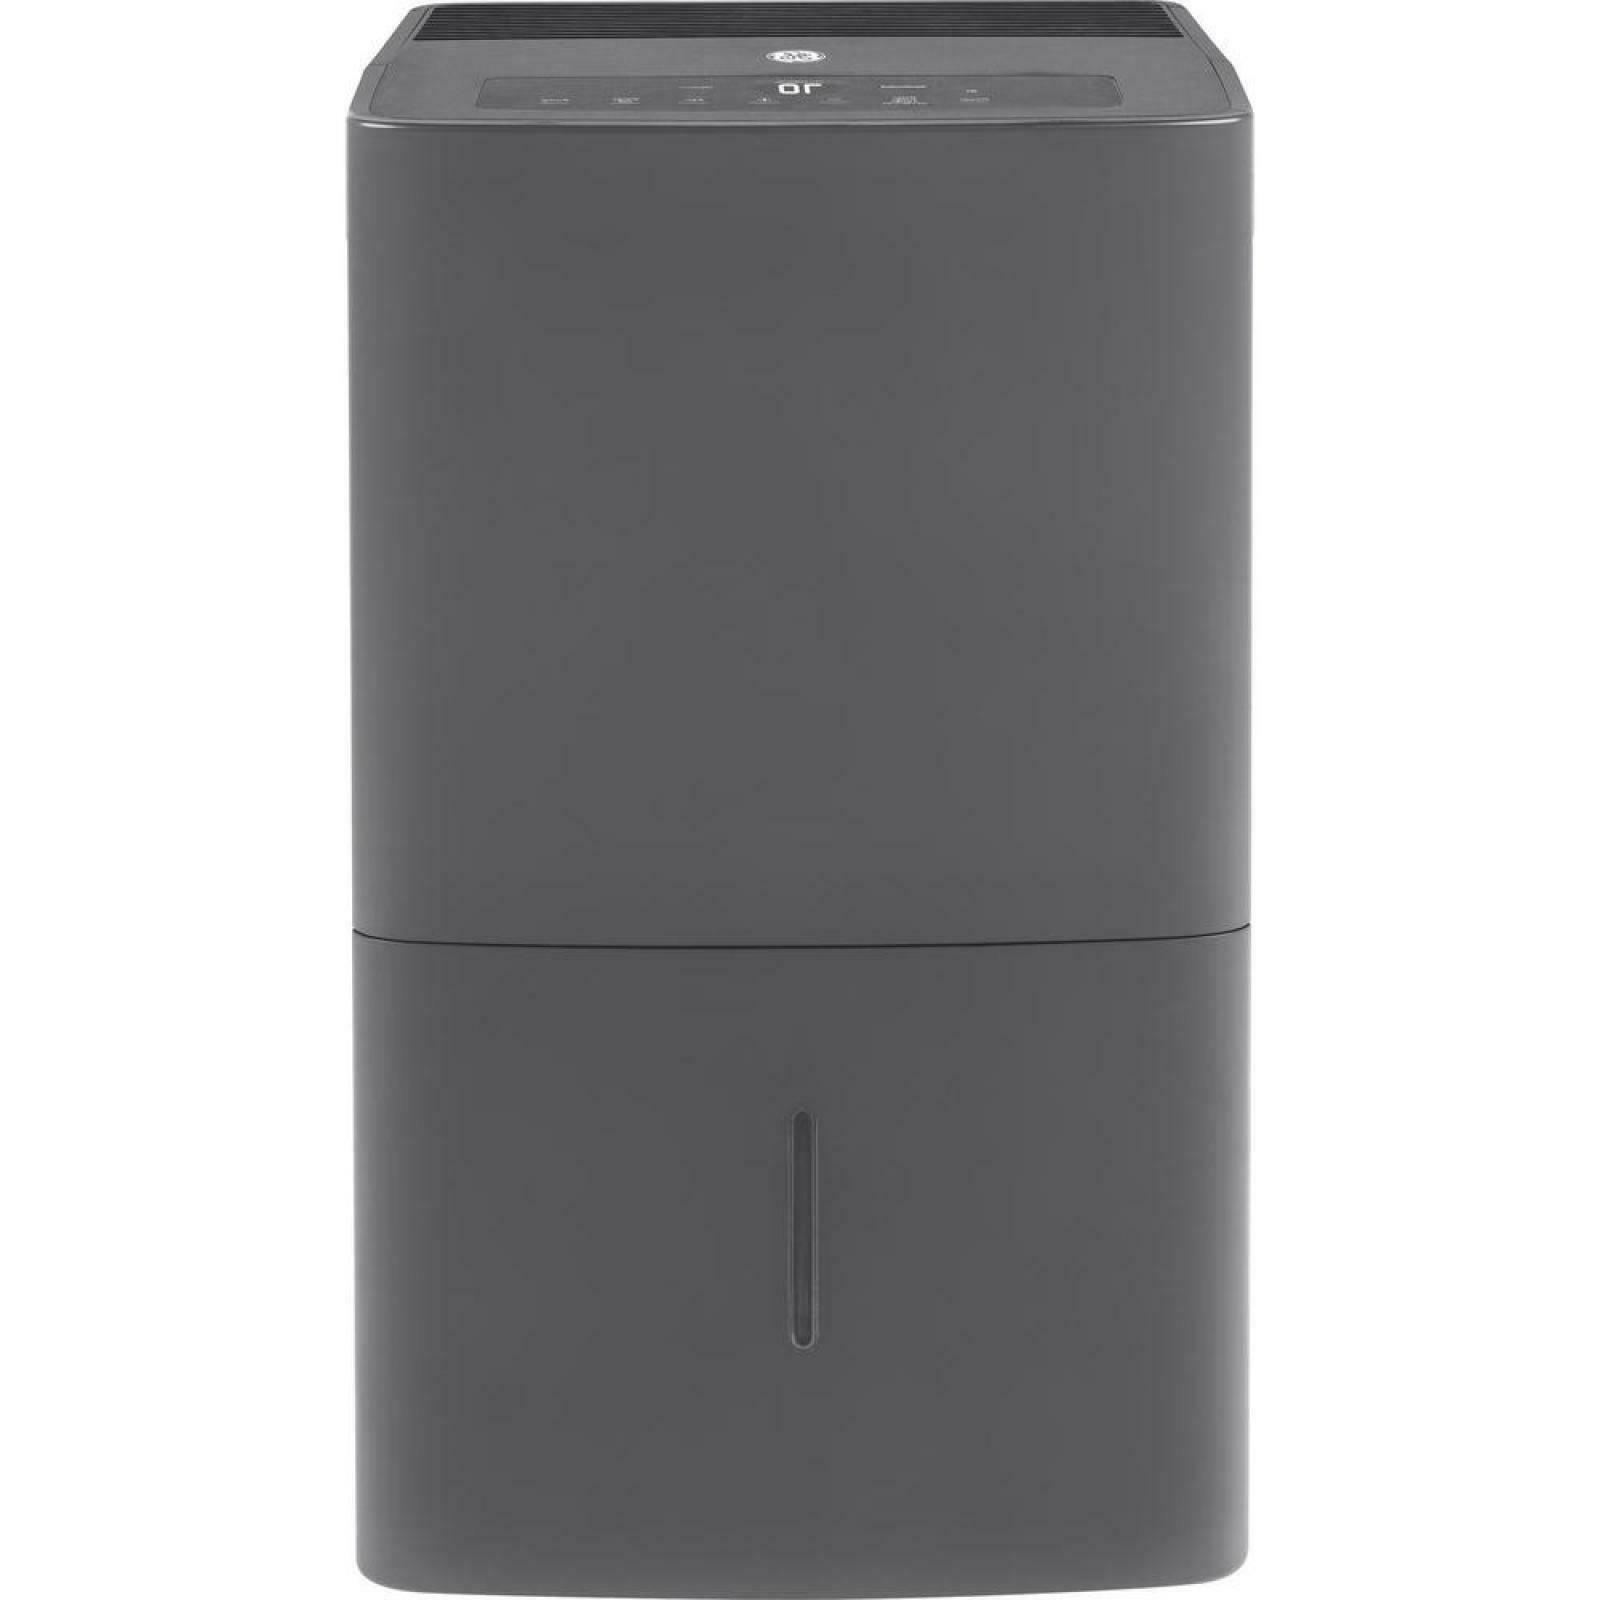 70 pt dehumidifier with built in pump